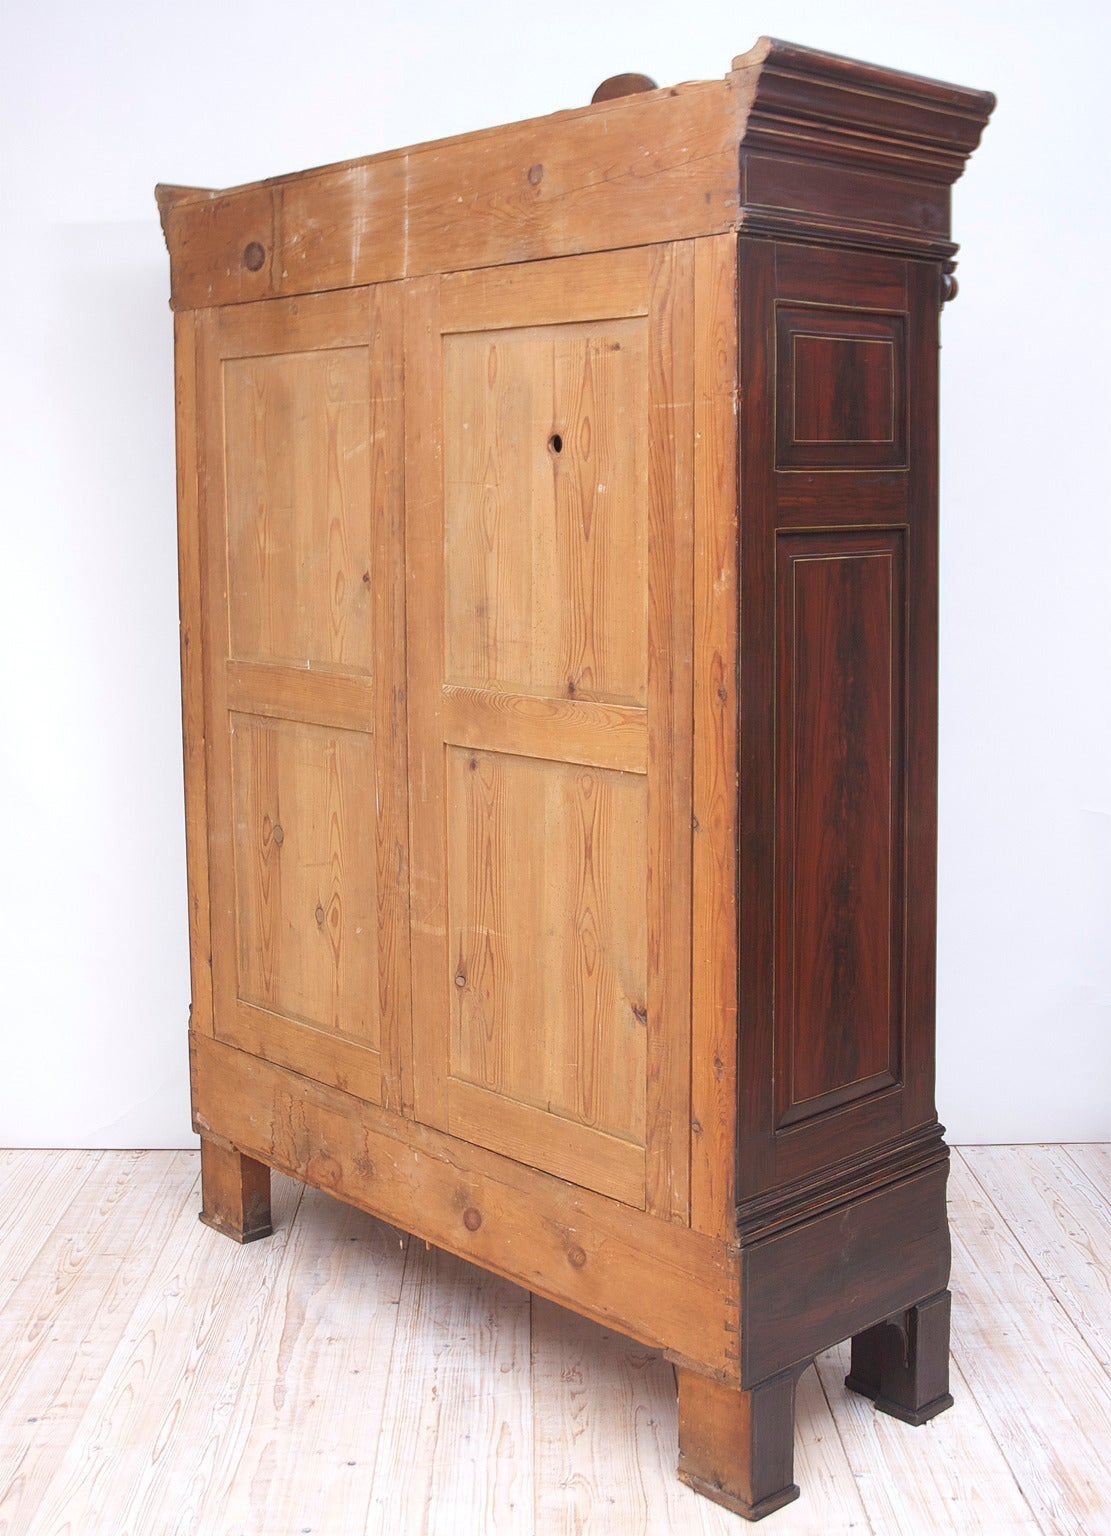 Armoire Sellerie Bois - German Empire Sun Armoire in Original Faux Bois and Stenciled Finish For Sale at 1stdibs